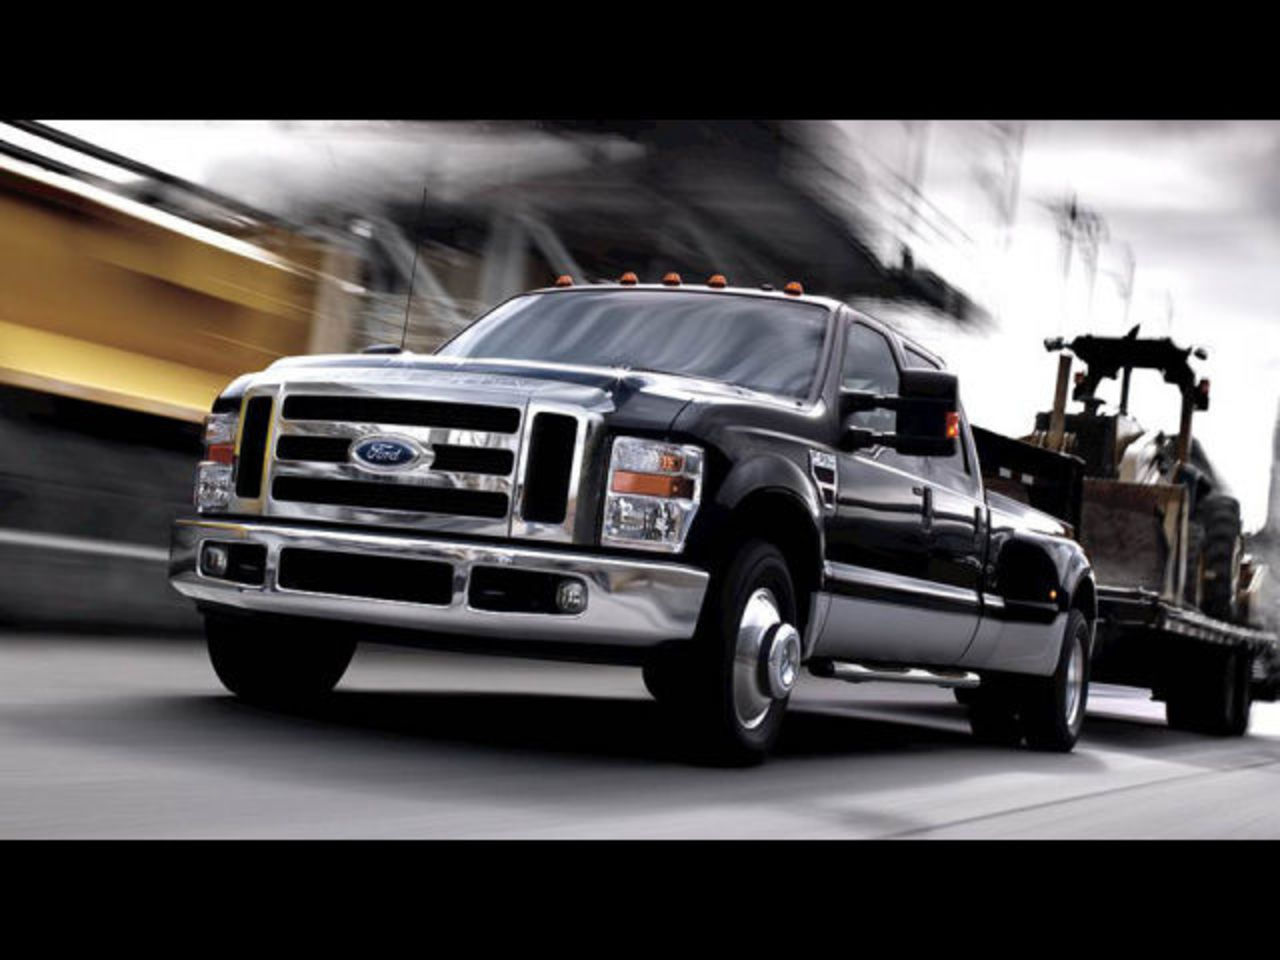 topworldauto photos of ford f 250 super duty v8 diesel photo galleries. Black Bedroom Furniture Sets. Home Design Ideas